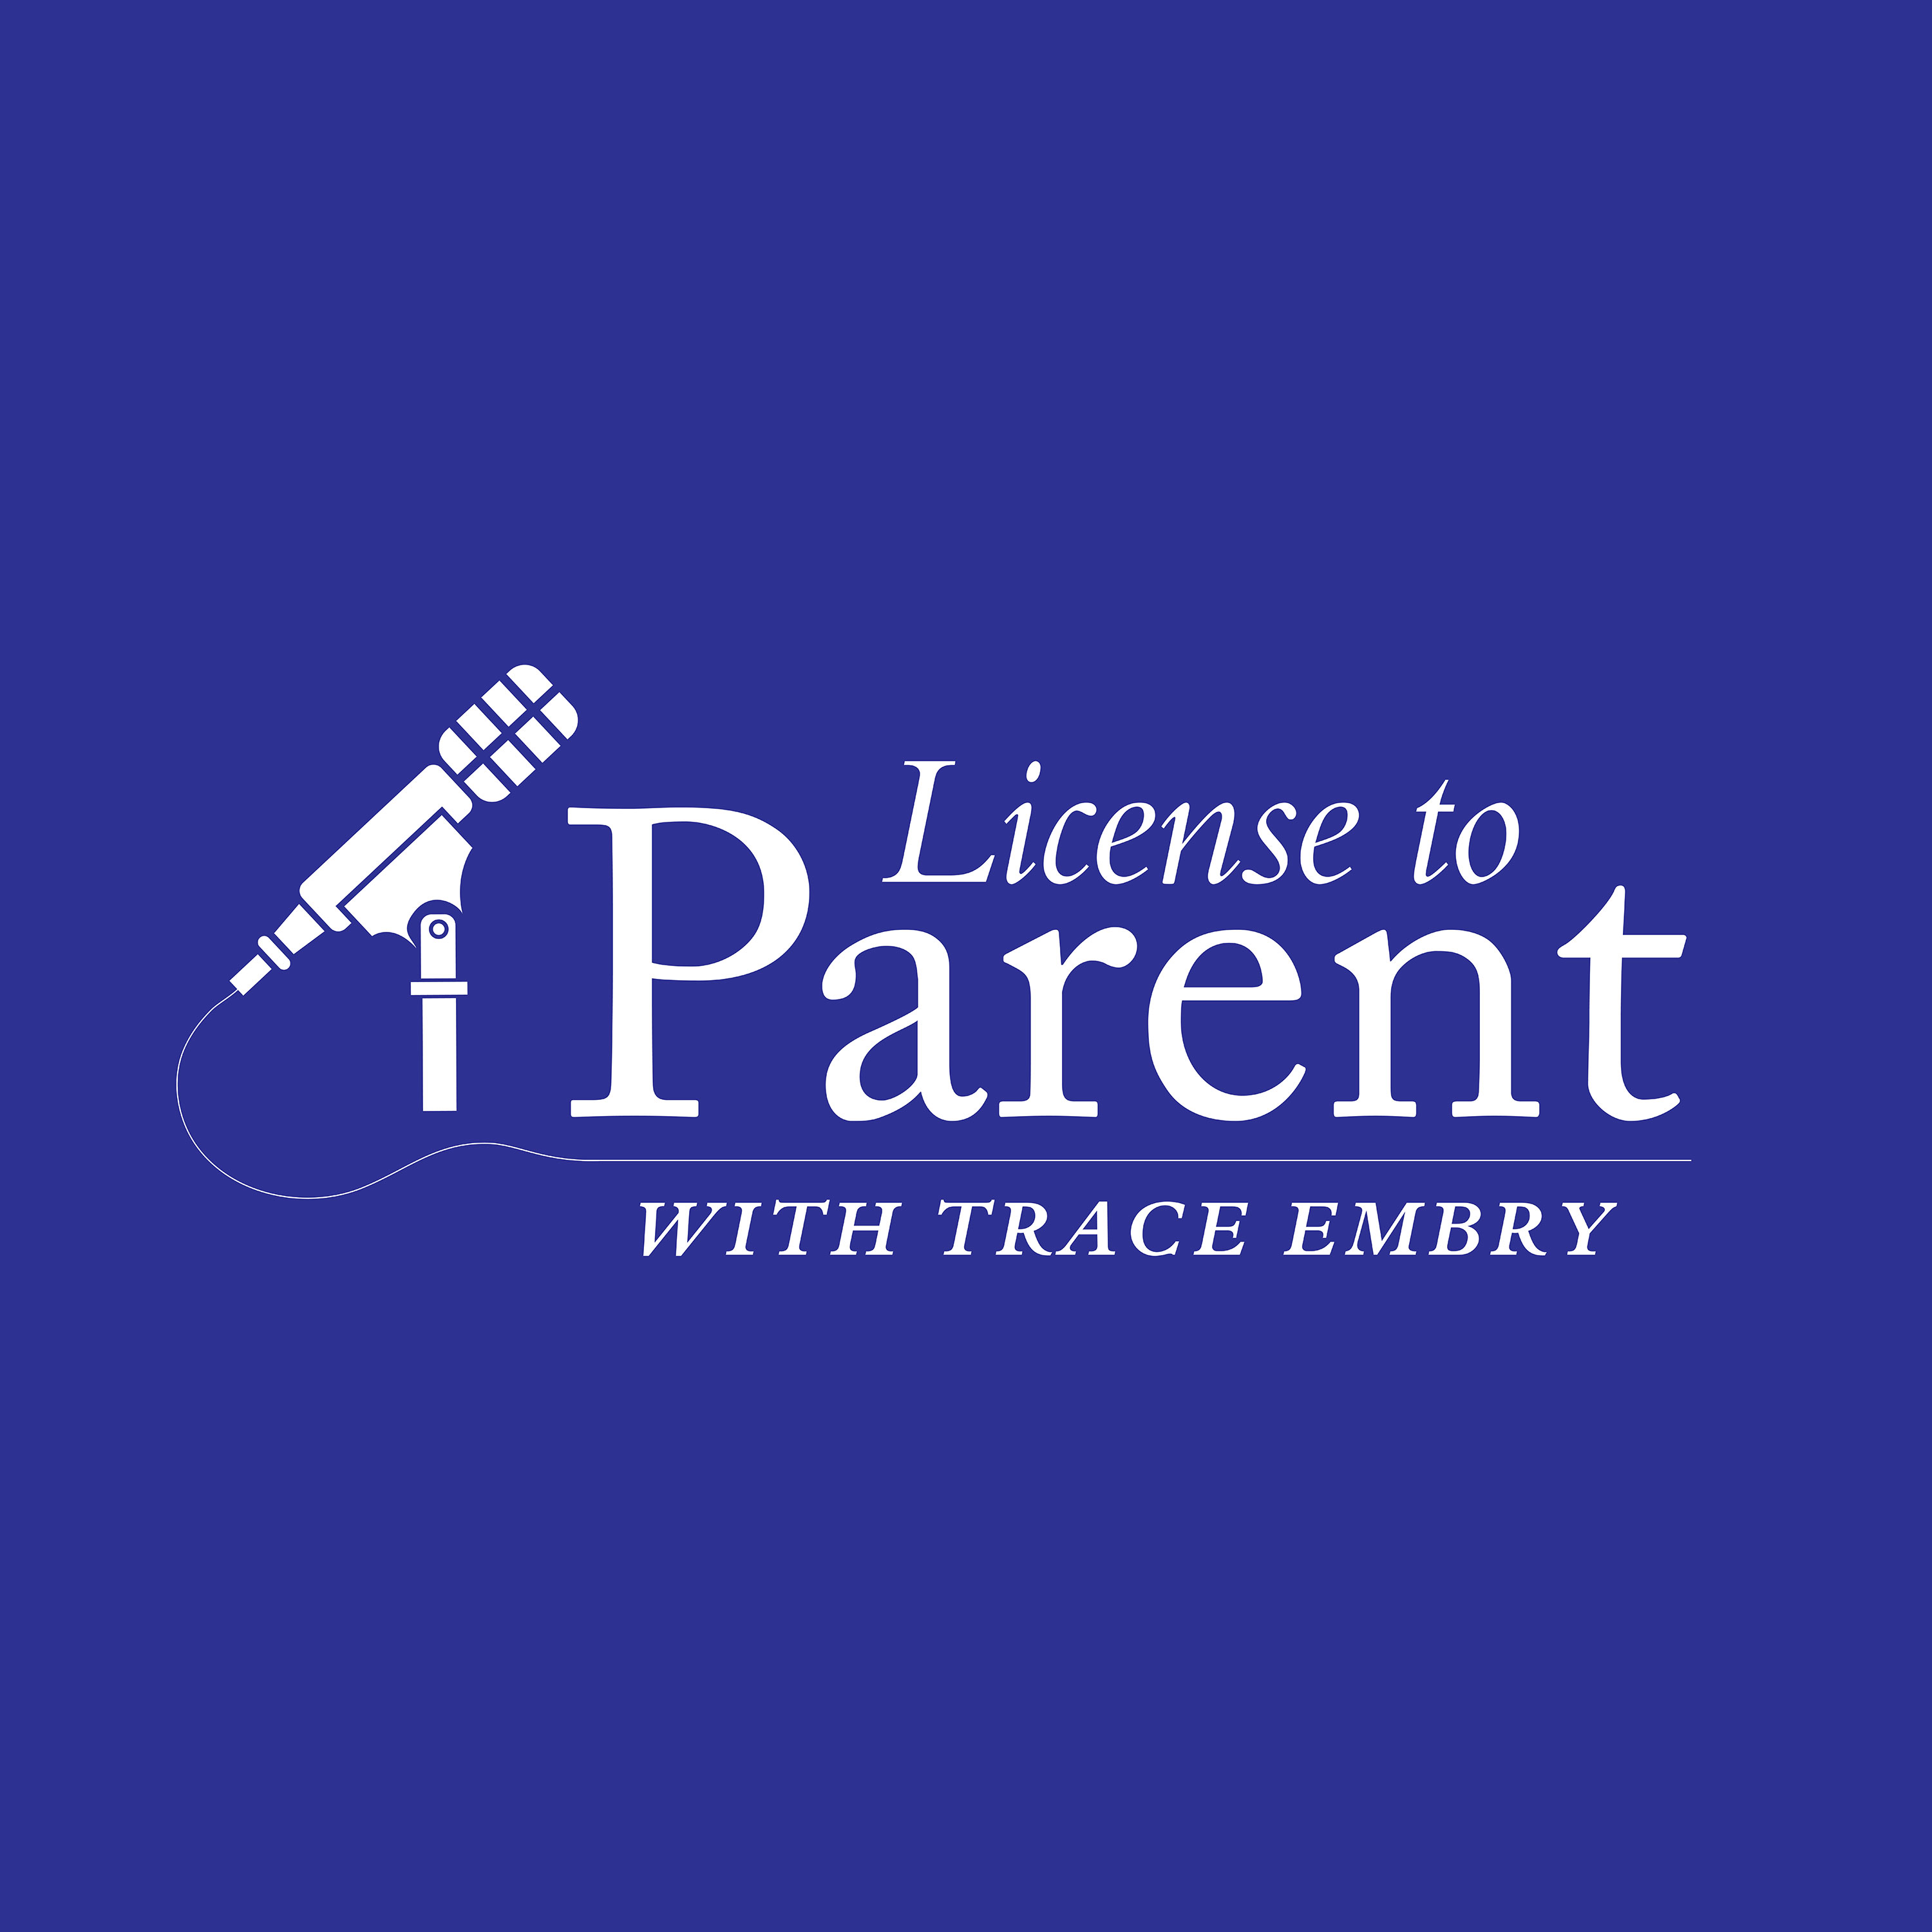 License to Parent with Trace Embry